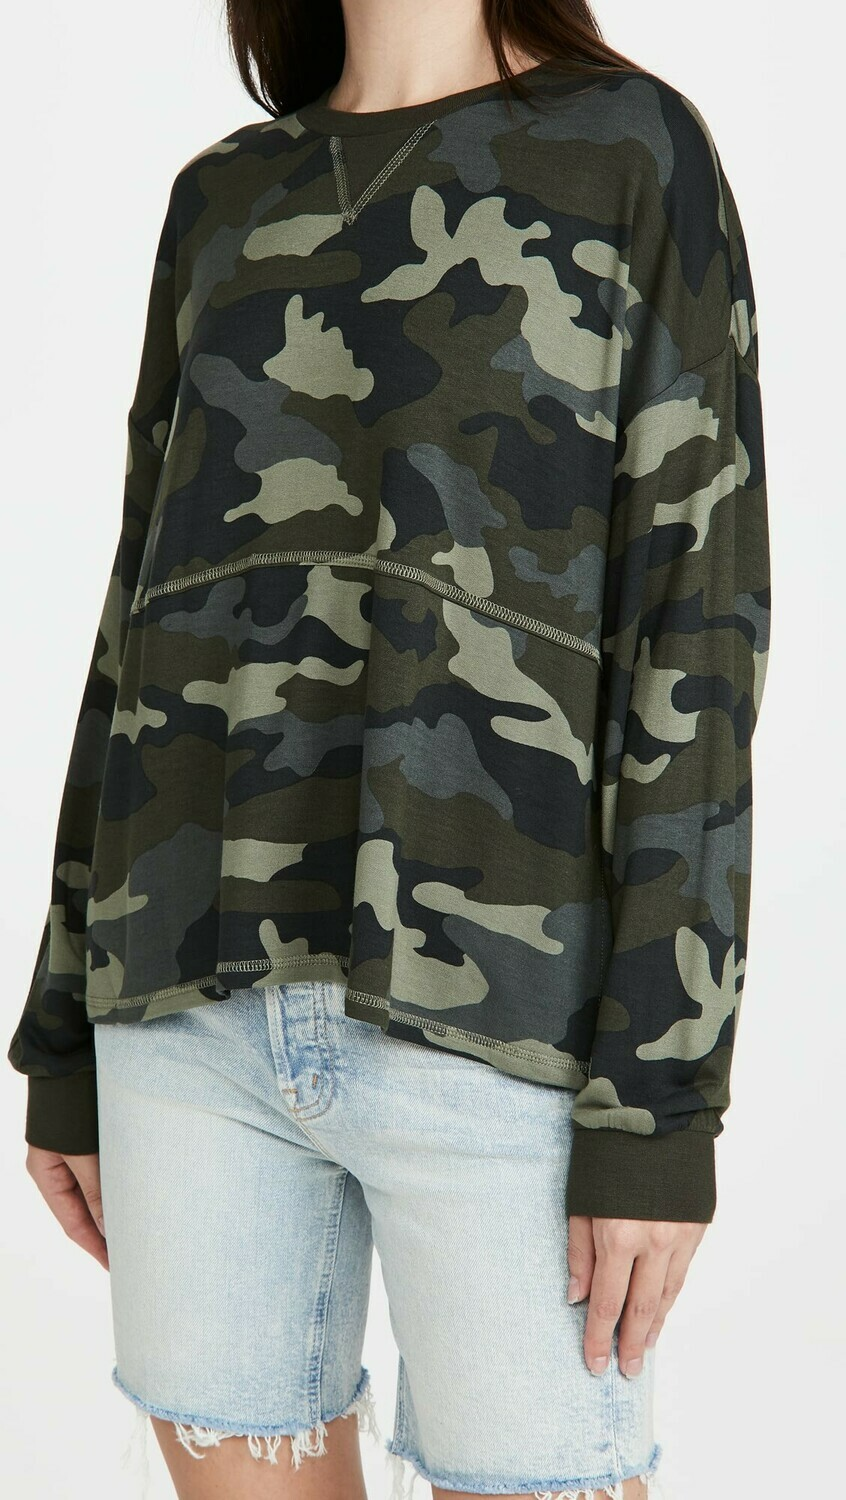 Army Green Camo top